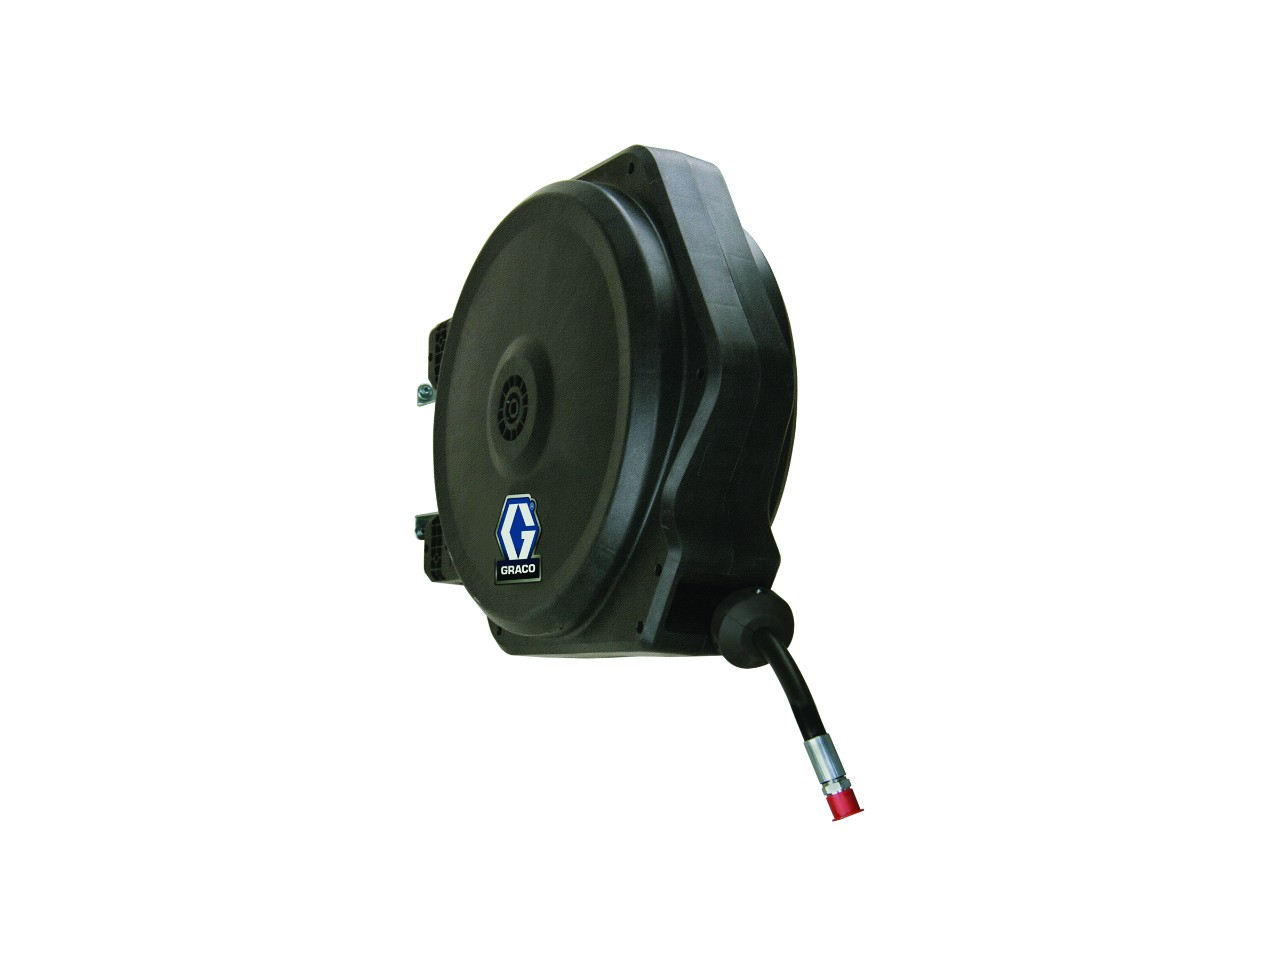 Download High Resolution Image|/content/dam/graco/led/images/outline/LD Series Hose Reels.tif